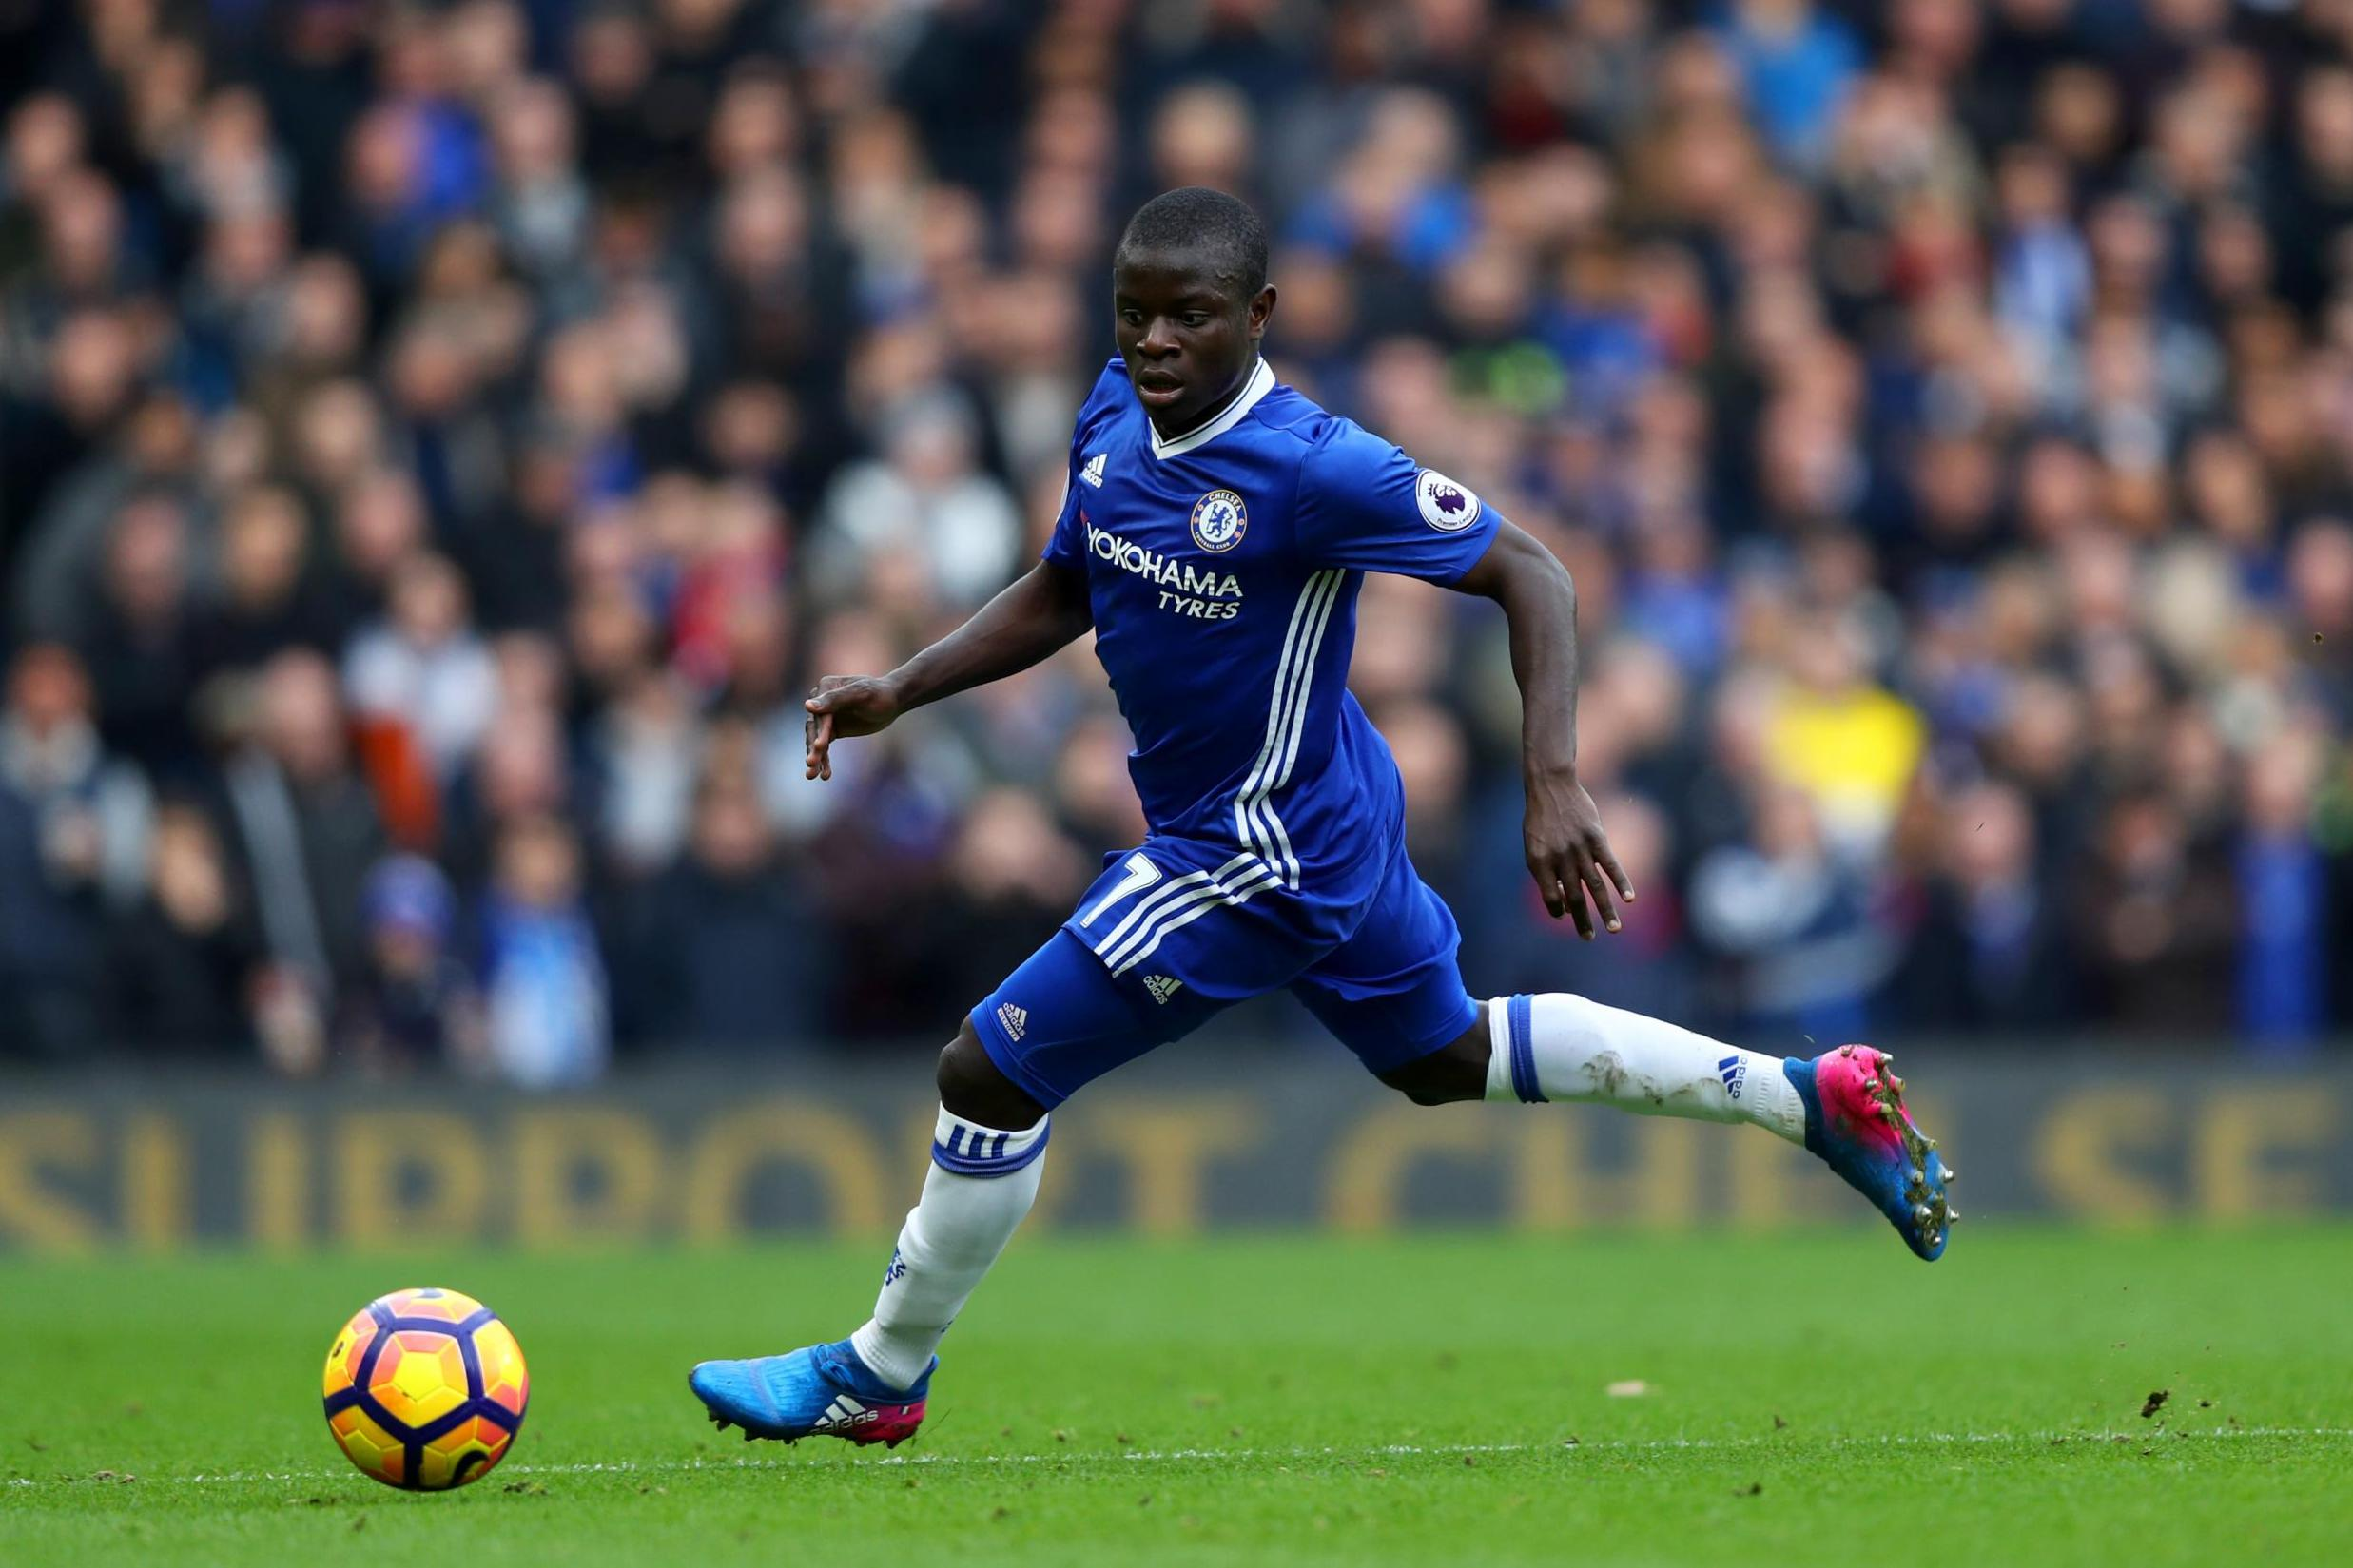 Kante: Count your blessings, wins Football Writers' Association player of the year award